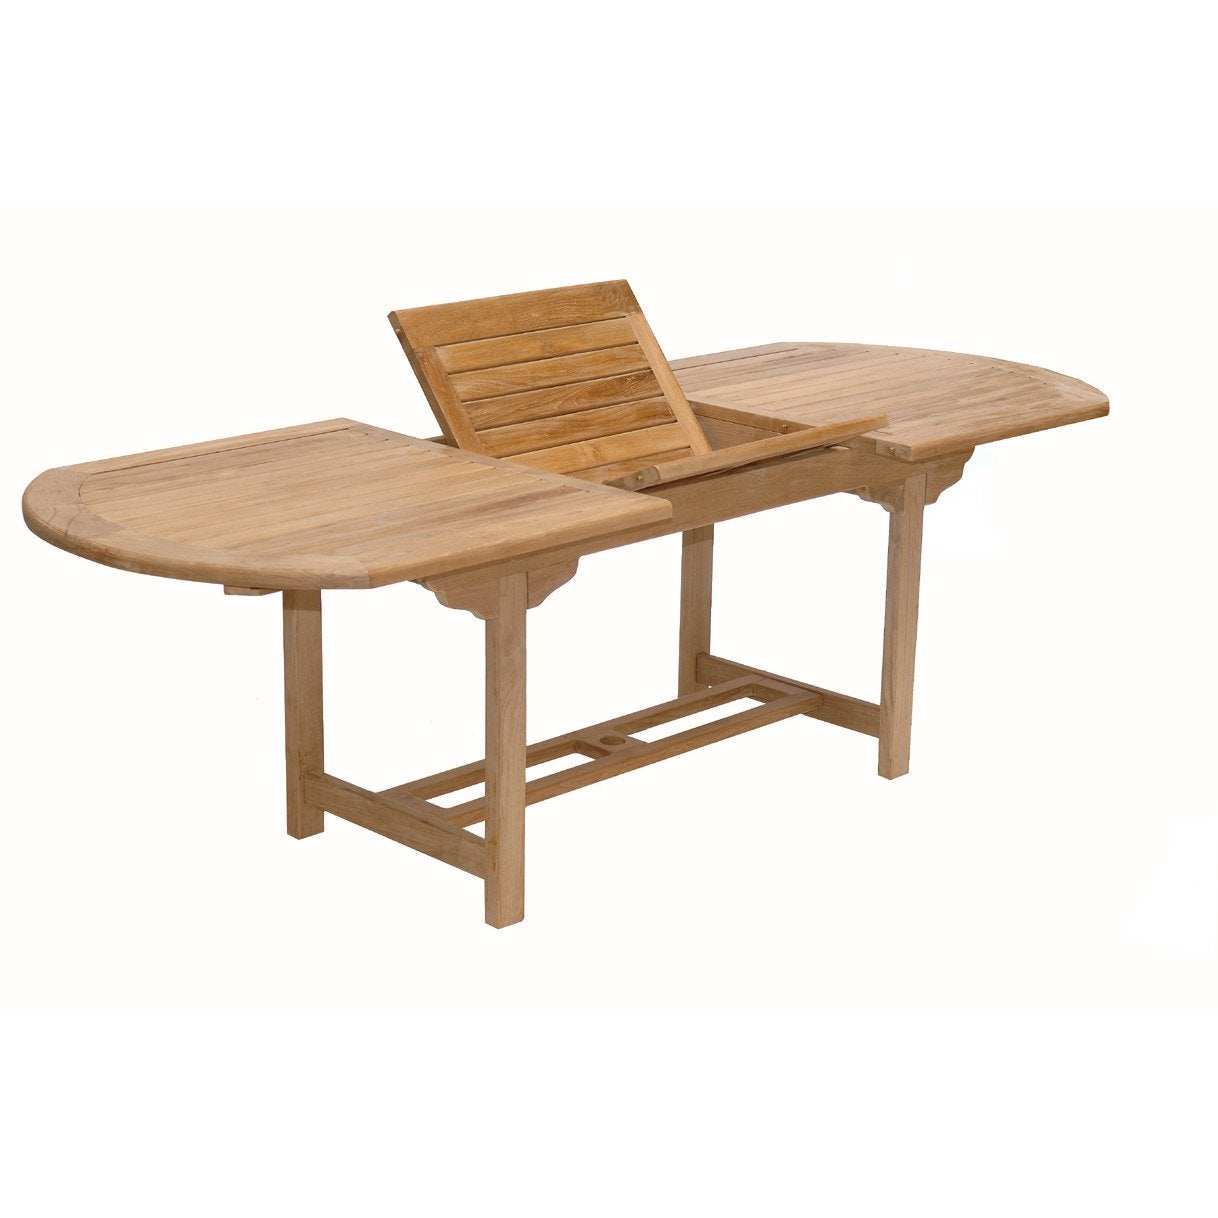 Table de jardin azur ovale naturel 8 personnes leroy merlin - Leroy merlin table jardin ...